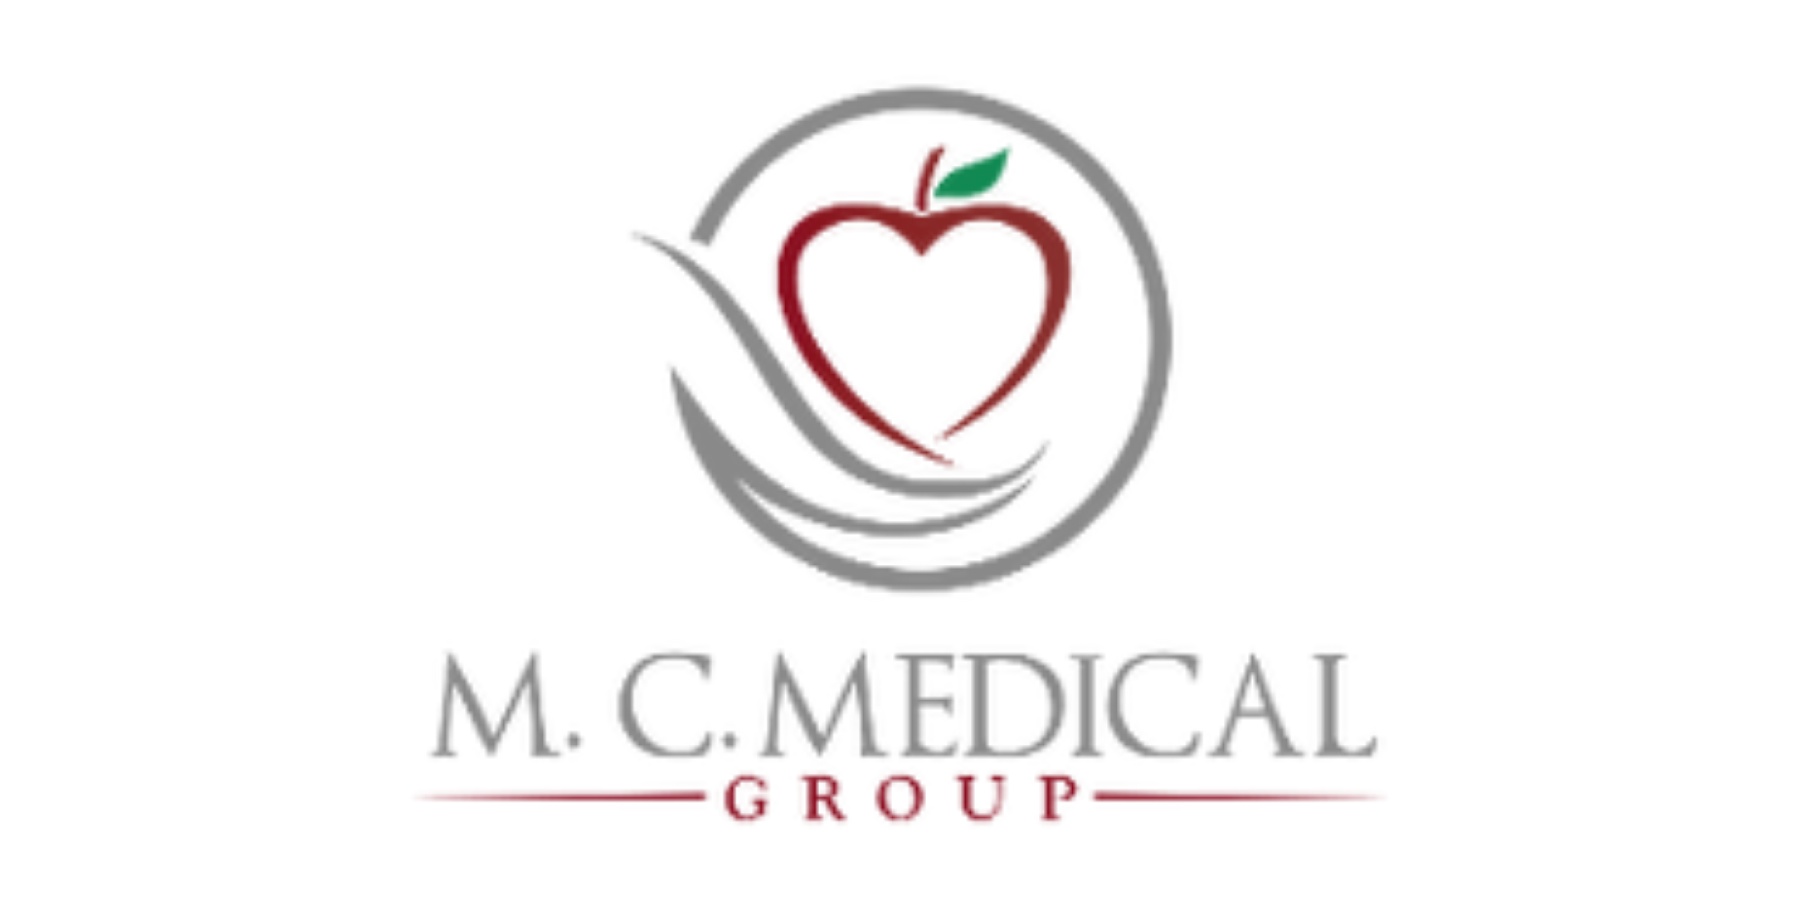 MC Medical Group LLC